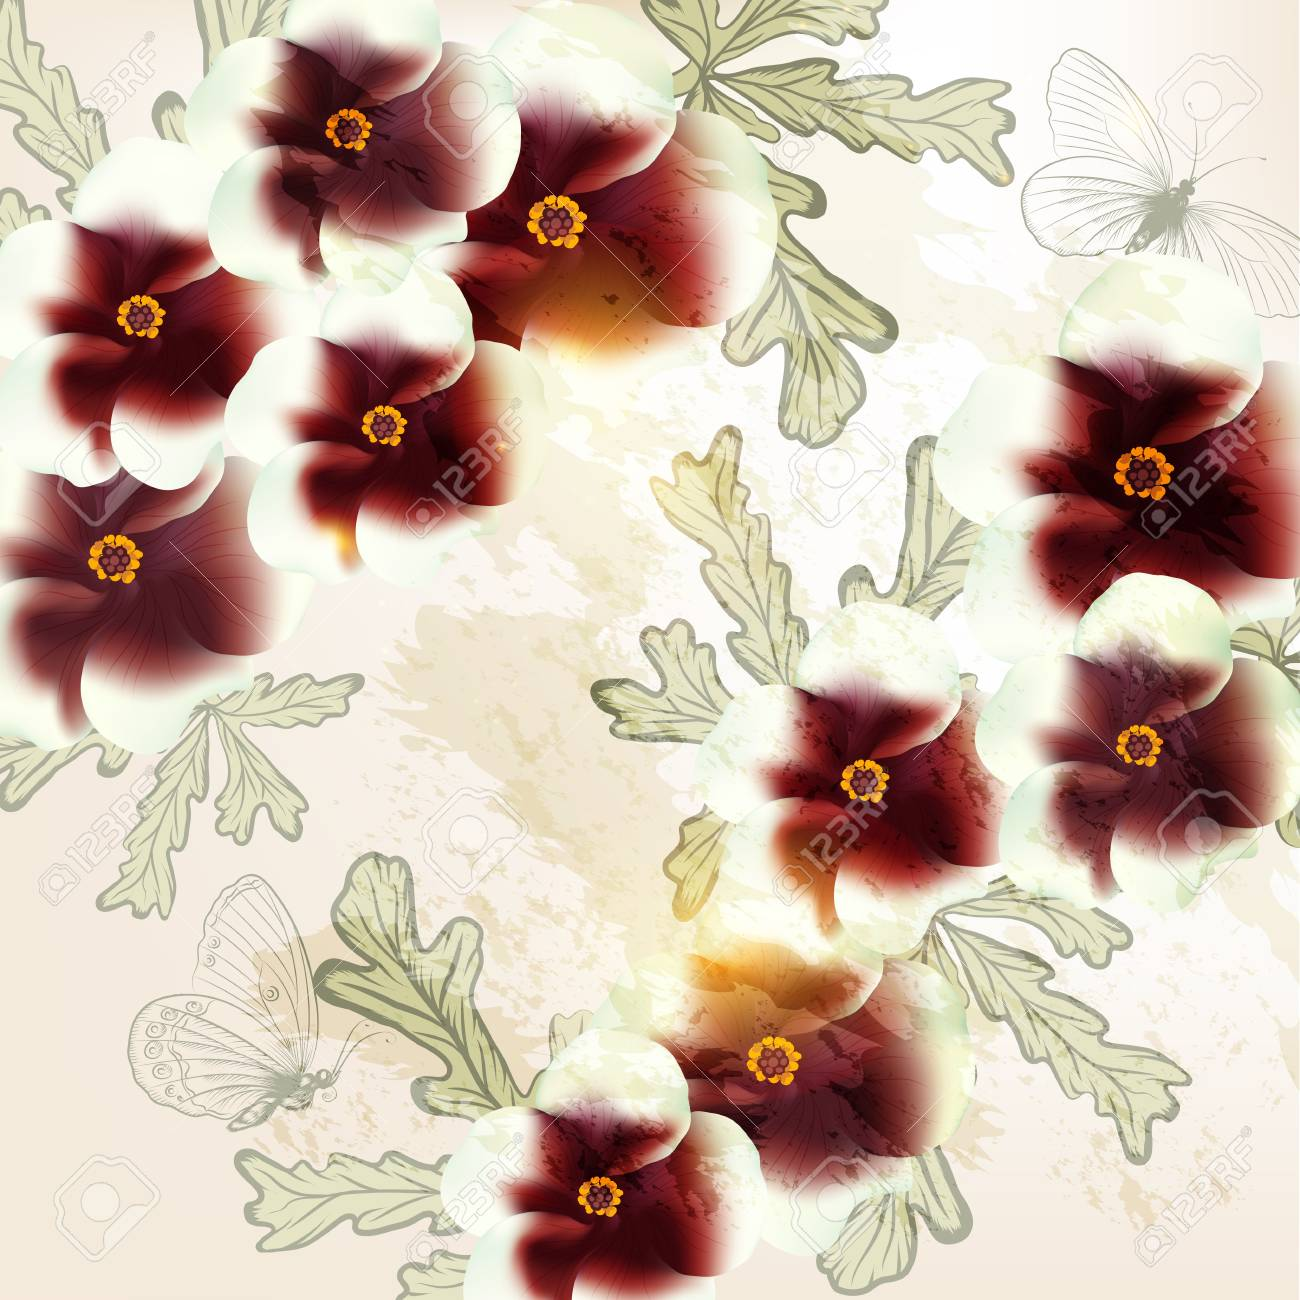 Cute vector background   in retro style with flowers Stock Vector - 20746513